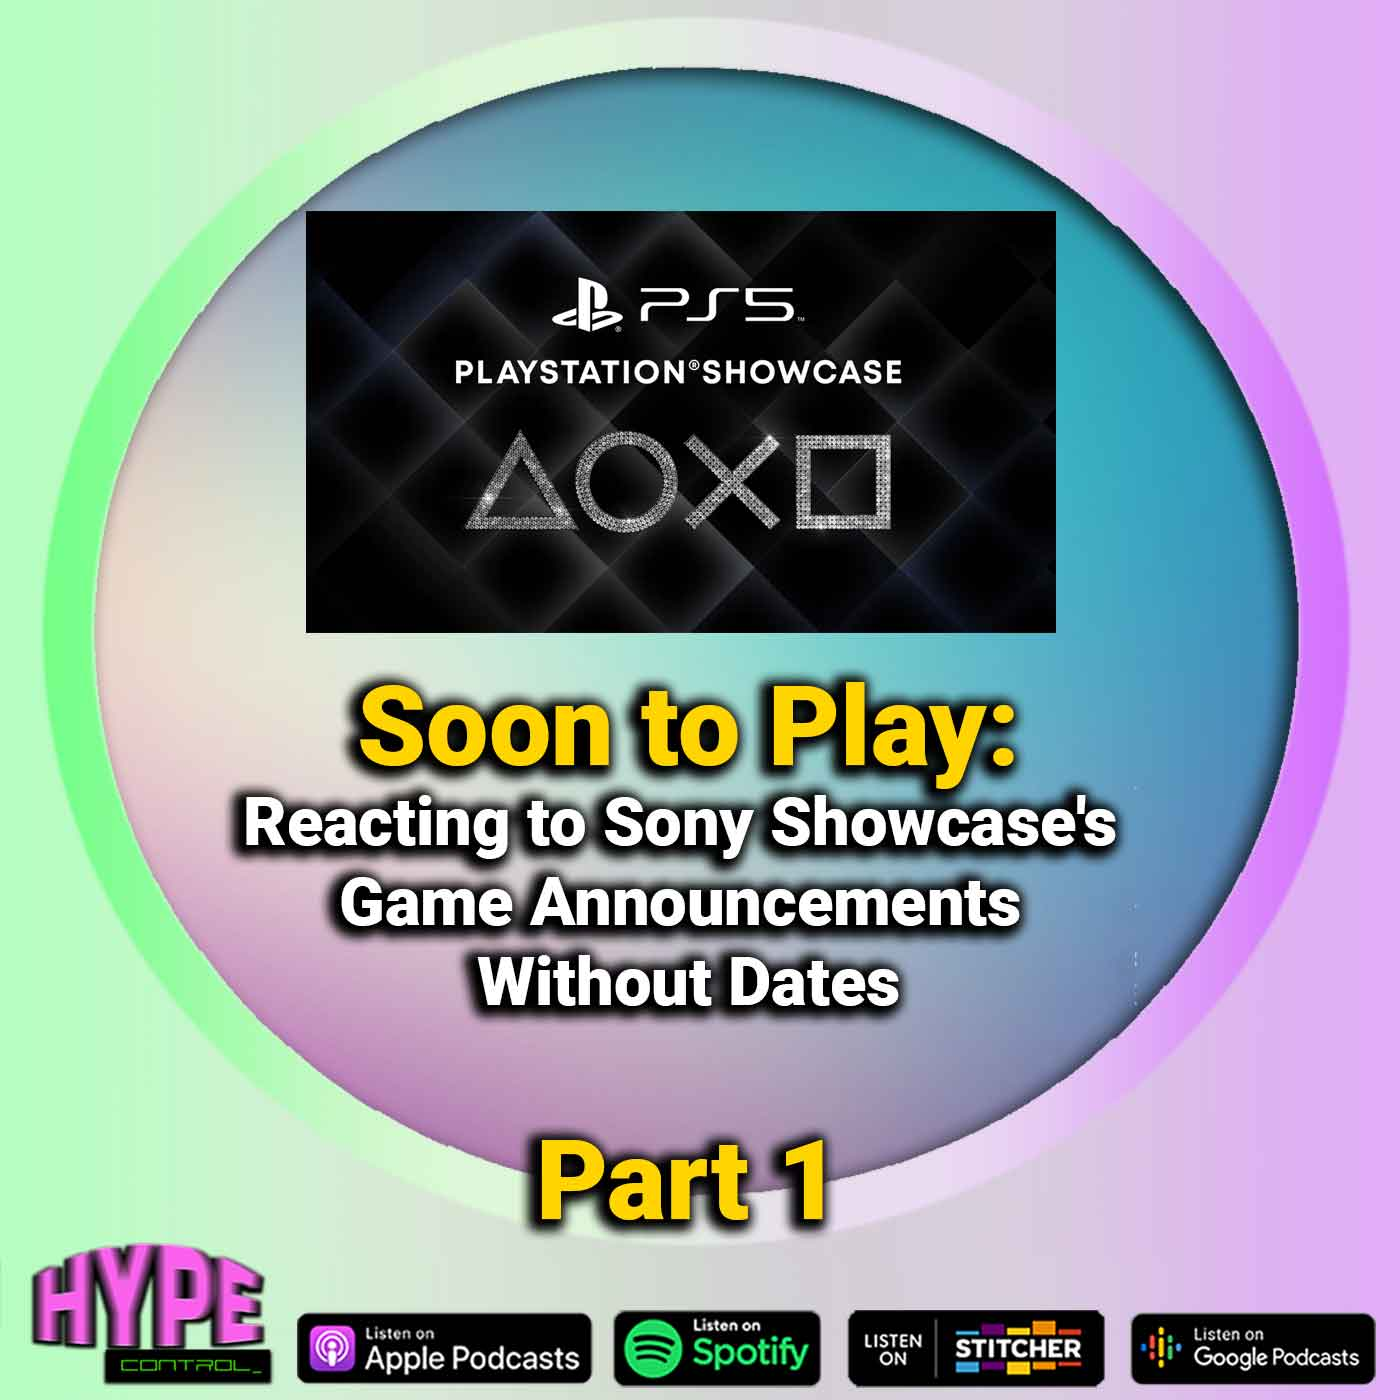 Ep. 32 Part 1 - Soon To Play (Reacting to Sony Showcase's Game Announcements Without Dates)